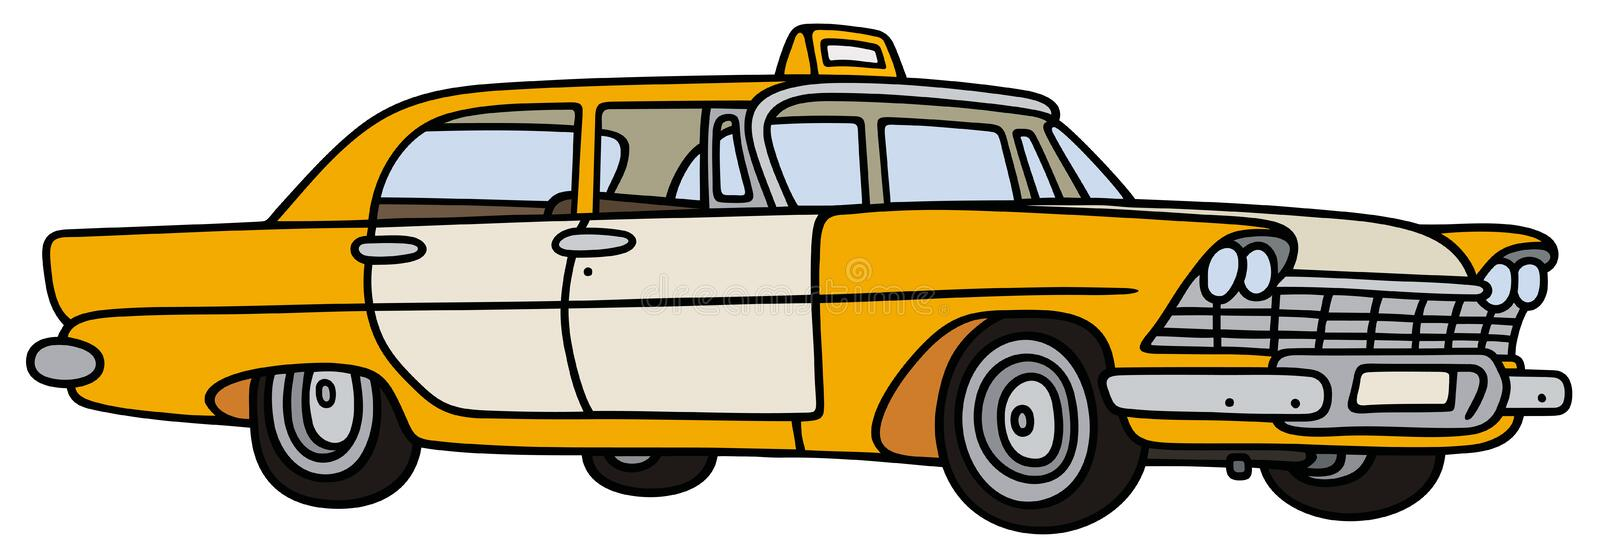 Klassisk taxi royaltyfri illustrationer